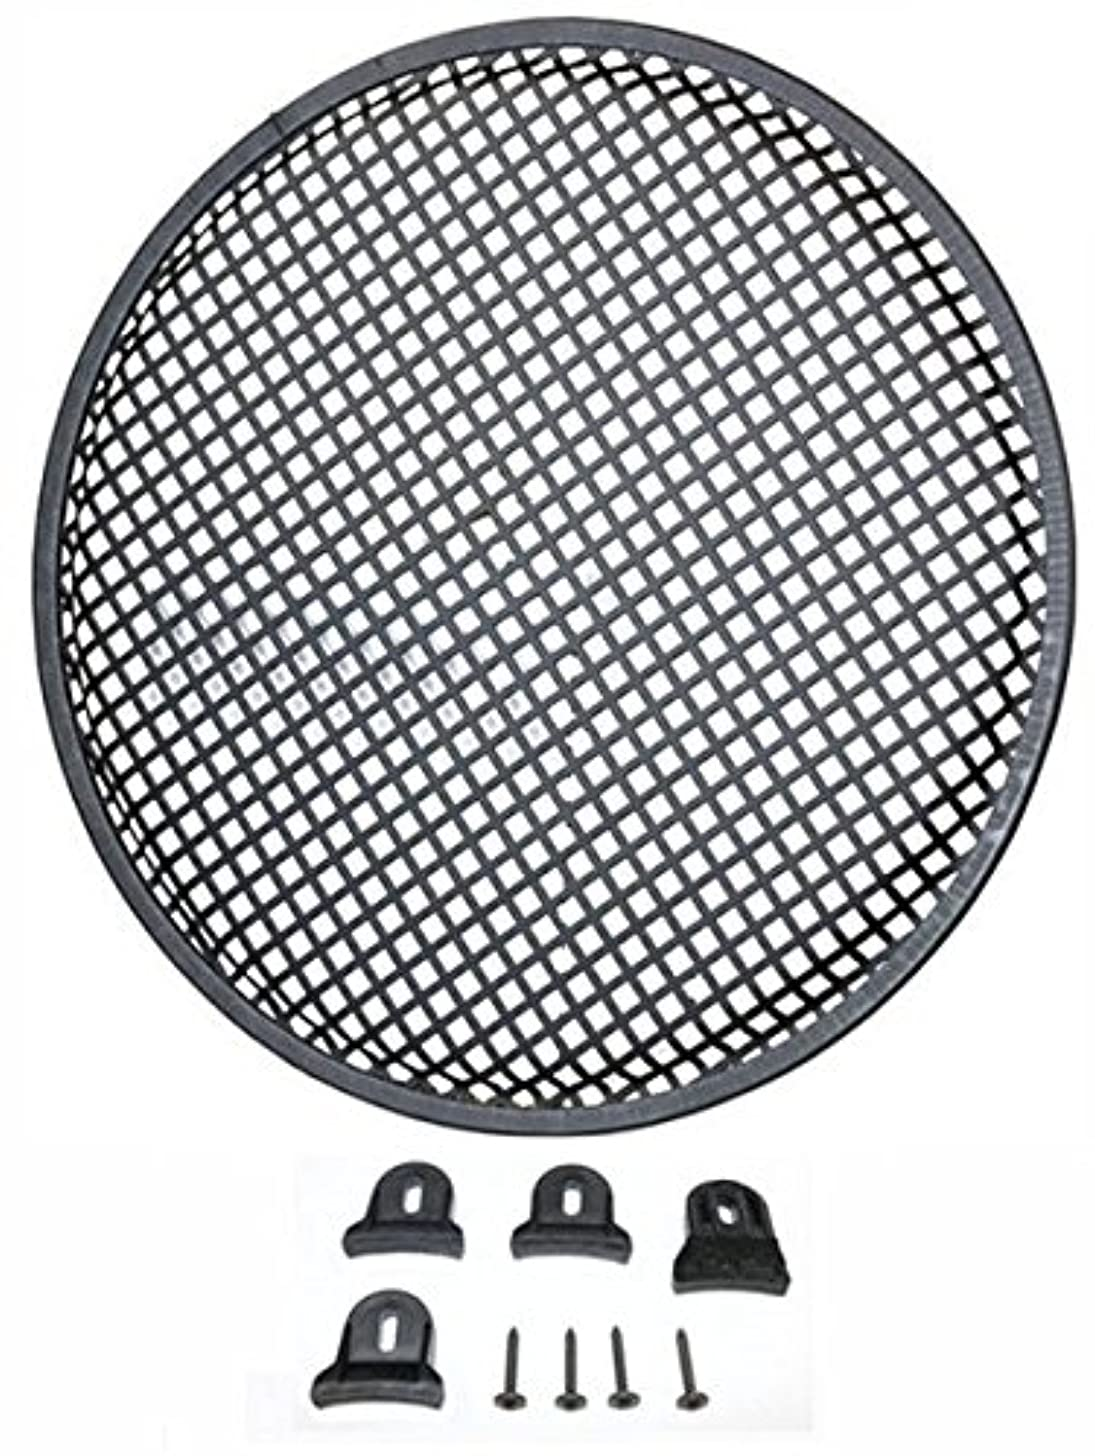 Durable 15-in Diameter Steel Monster Mesh Grill For 15-in Woofers With Hardware Steel Waffle Mesh Rubber Edge Includes Four Slip Resistant Plastic Grill Clamps And Appropriate Screws DEEJAYLED TBH15GR